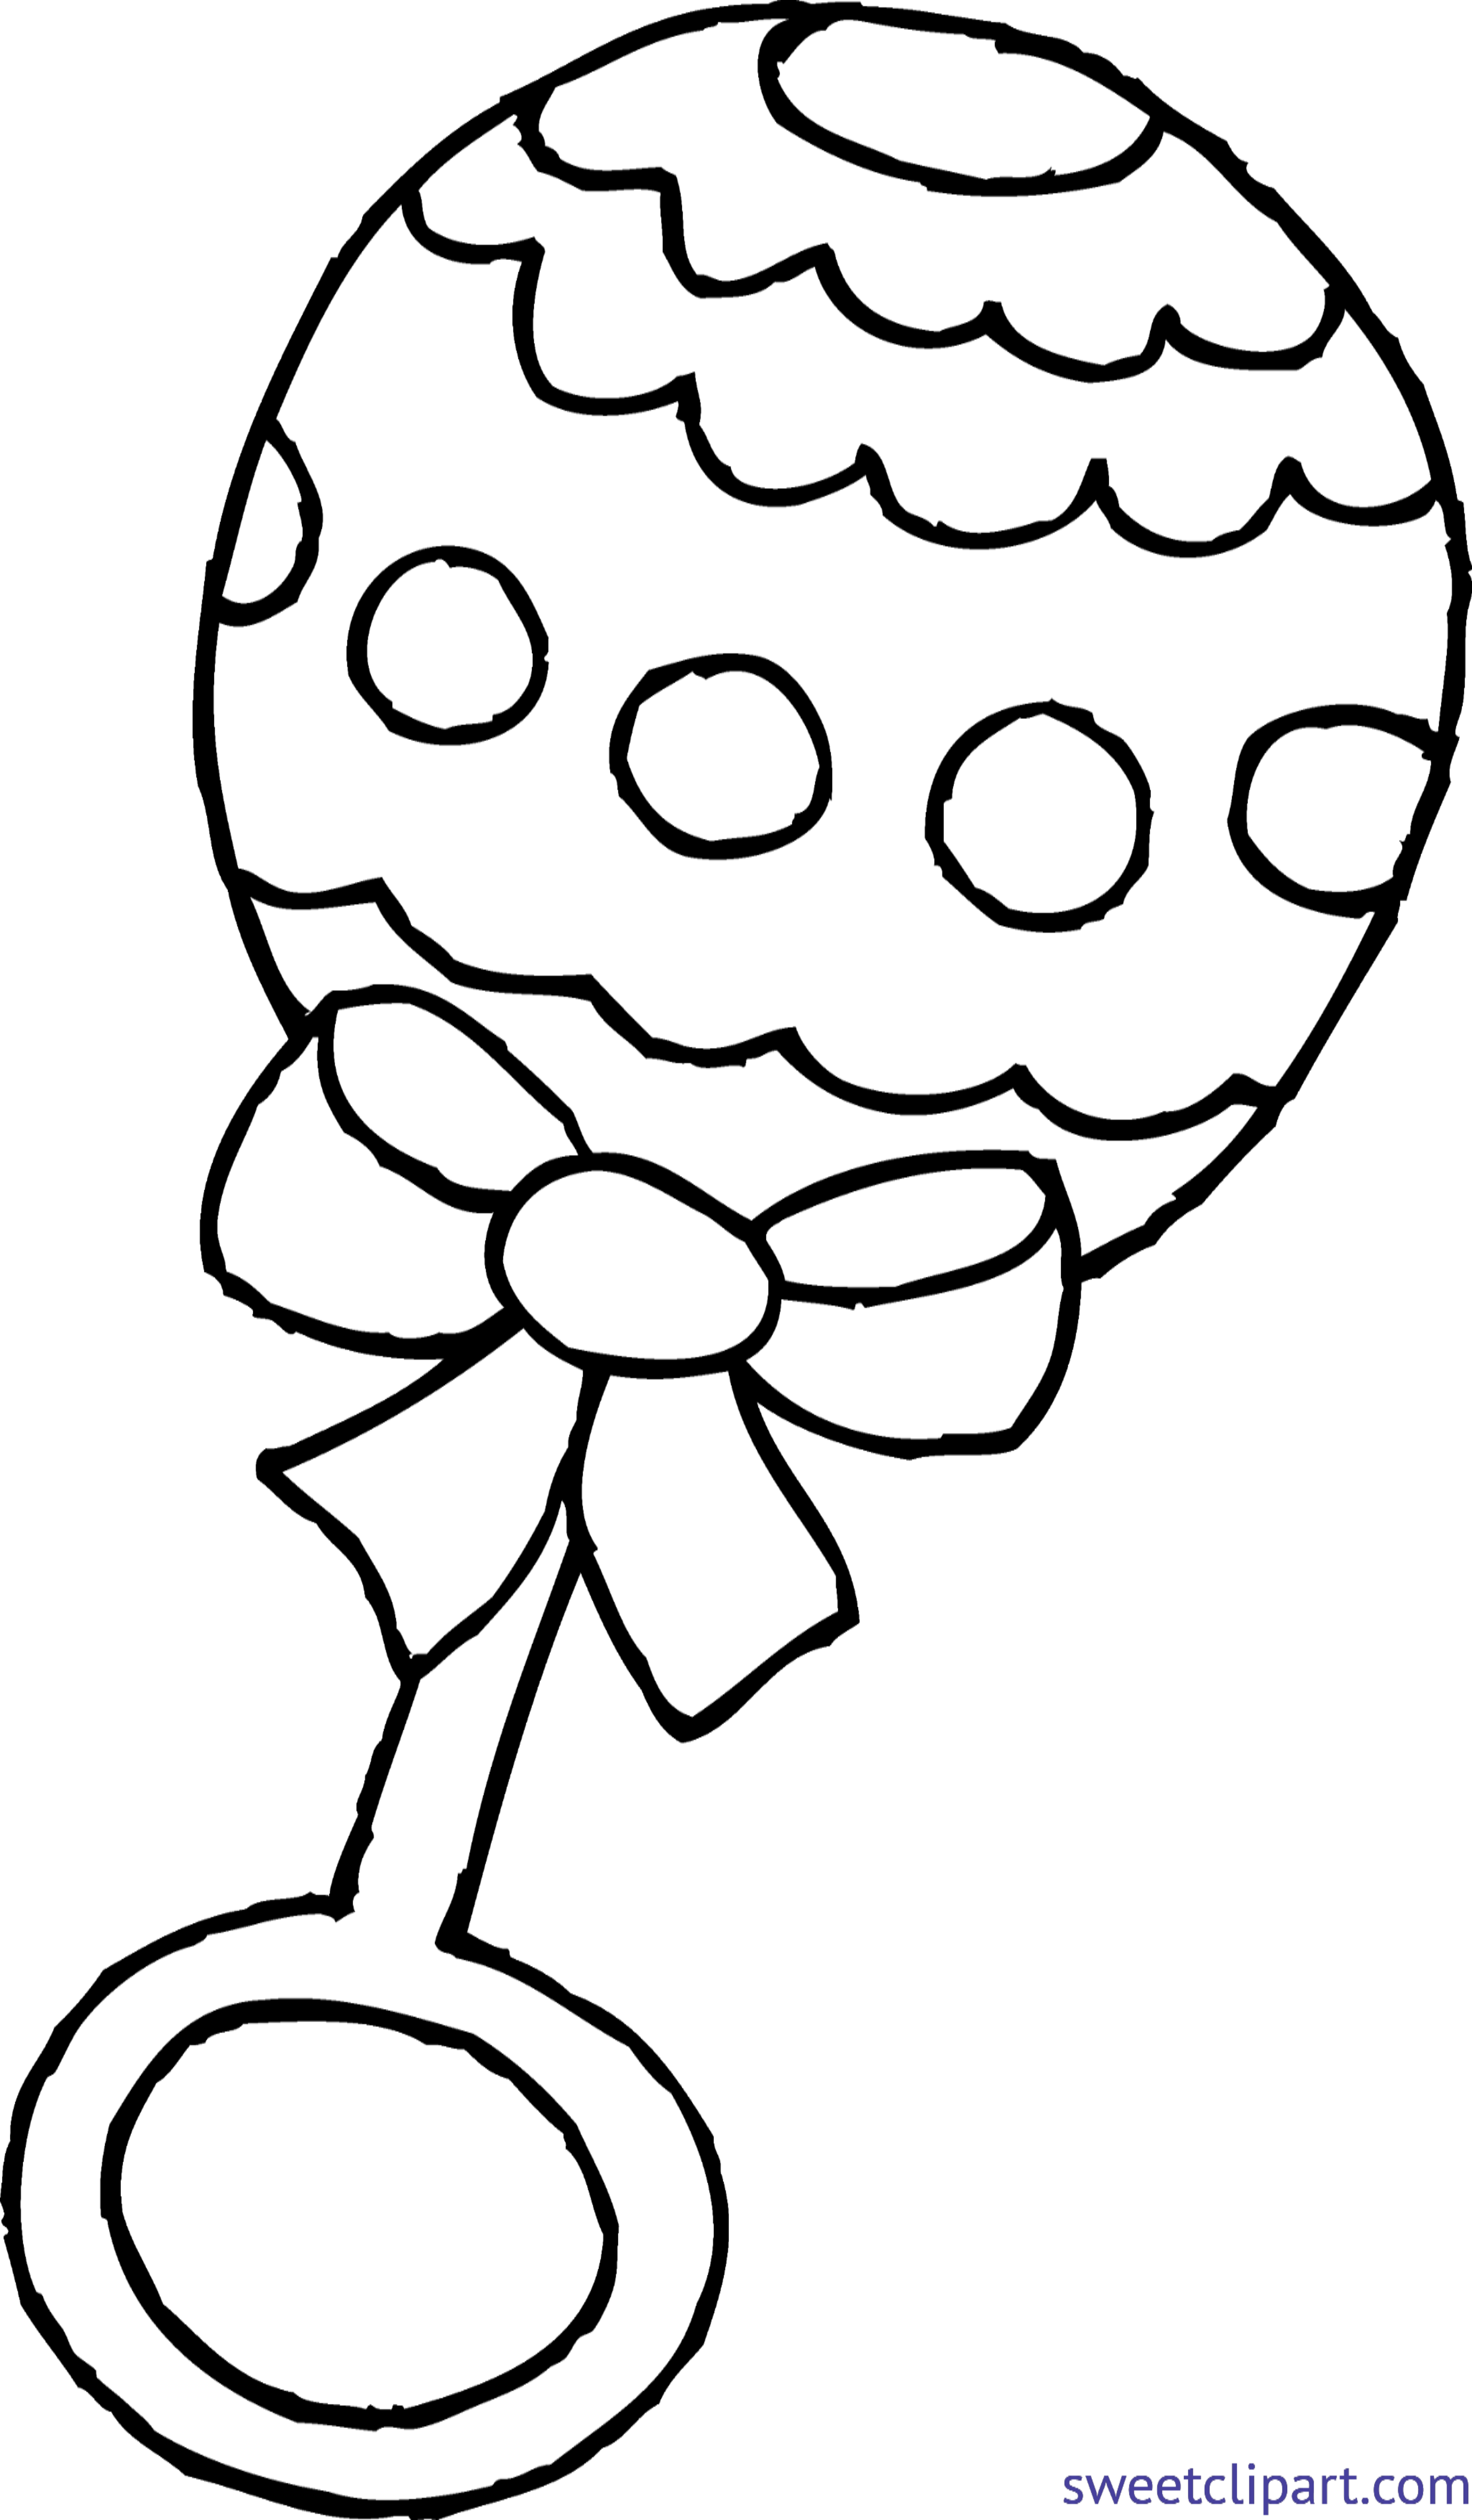 Syringe clipart baby medicine. Rattle coloring page clip